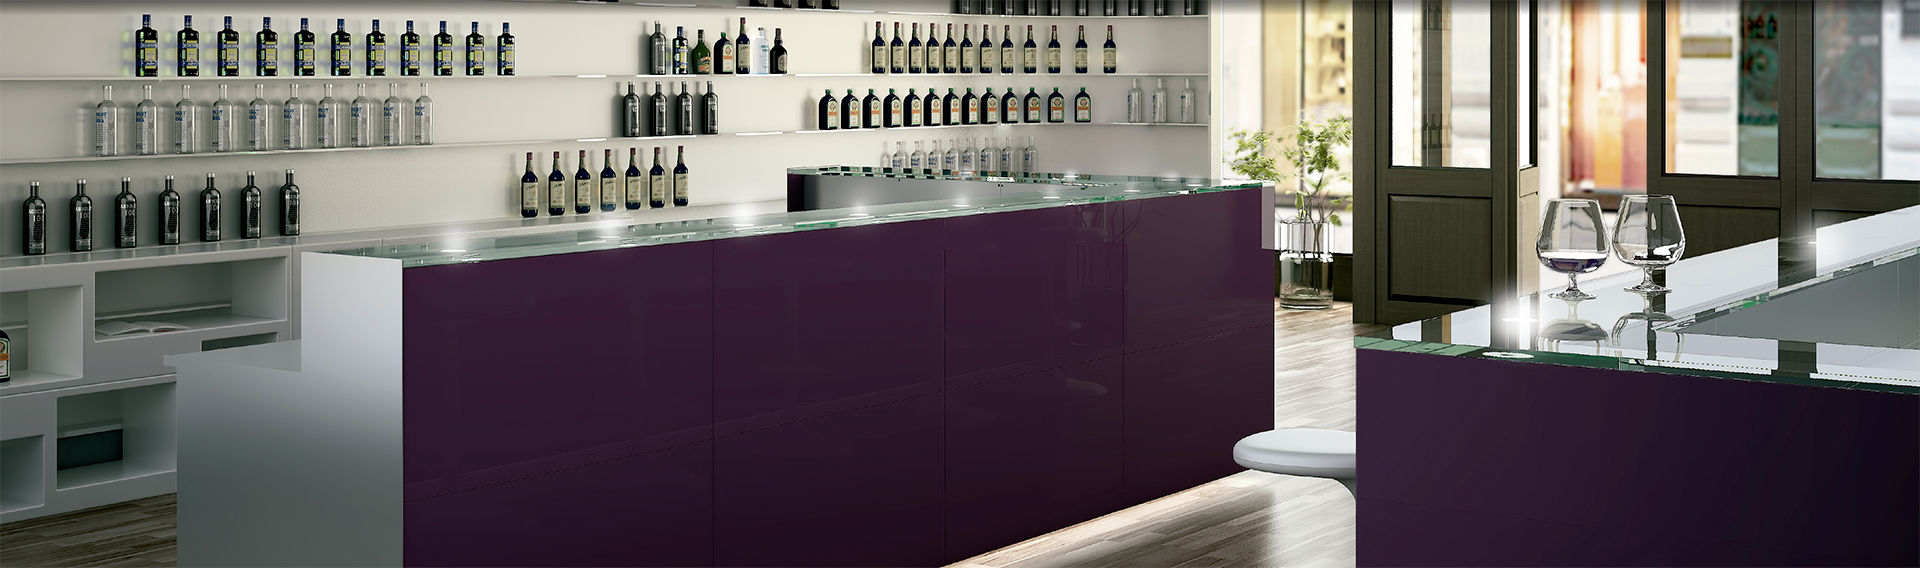 Bar Counters